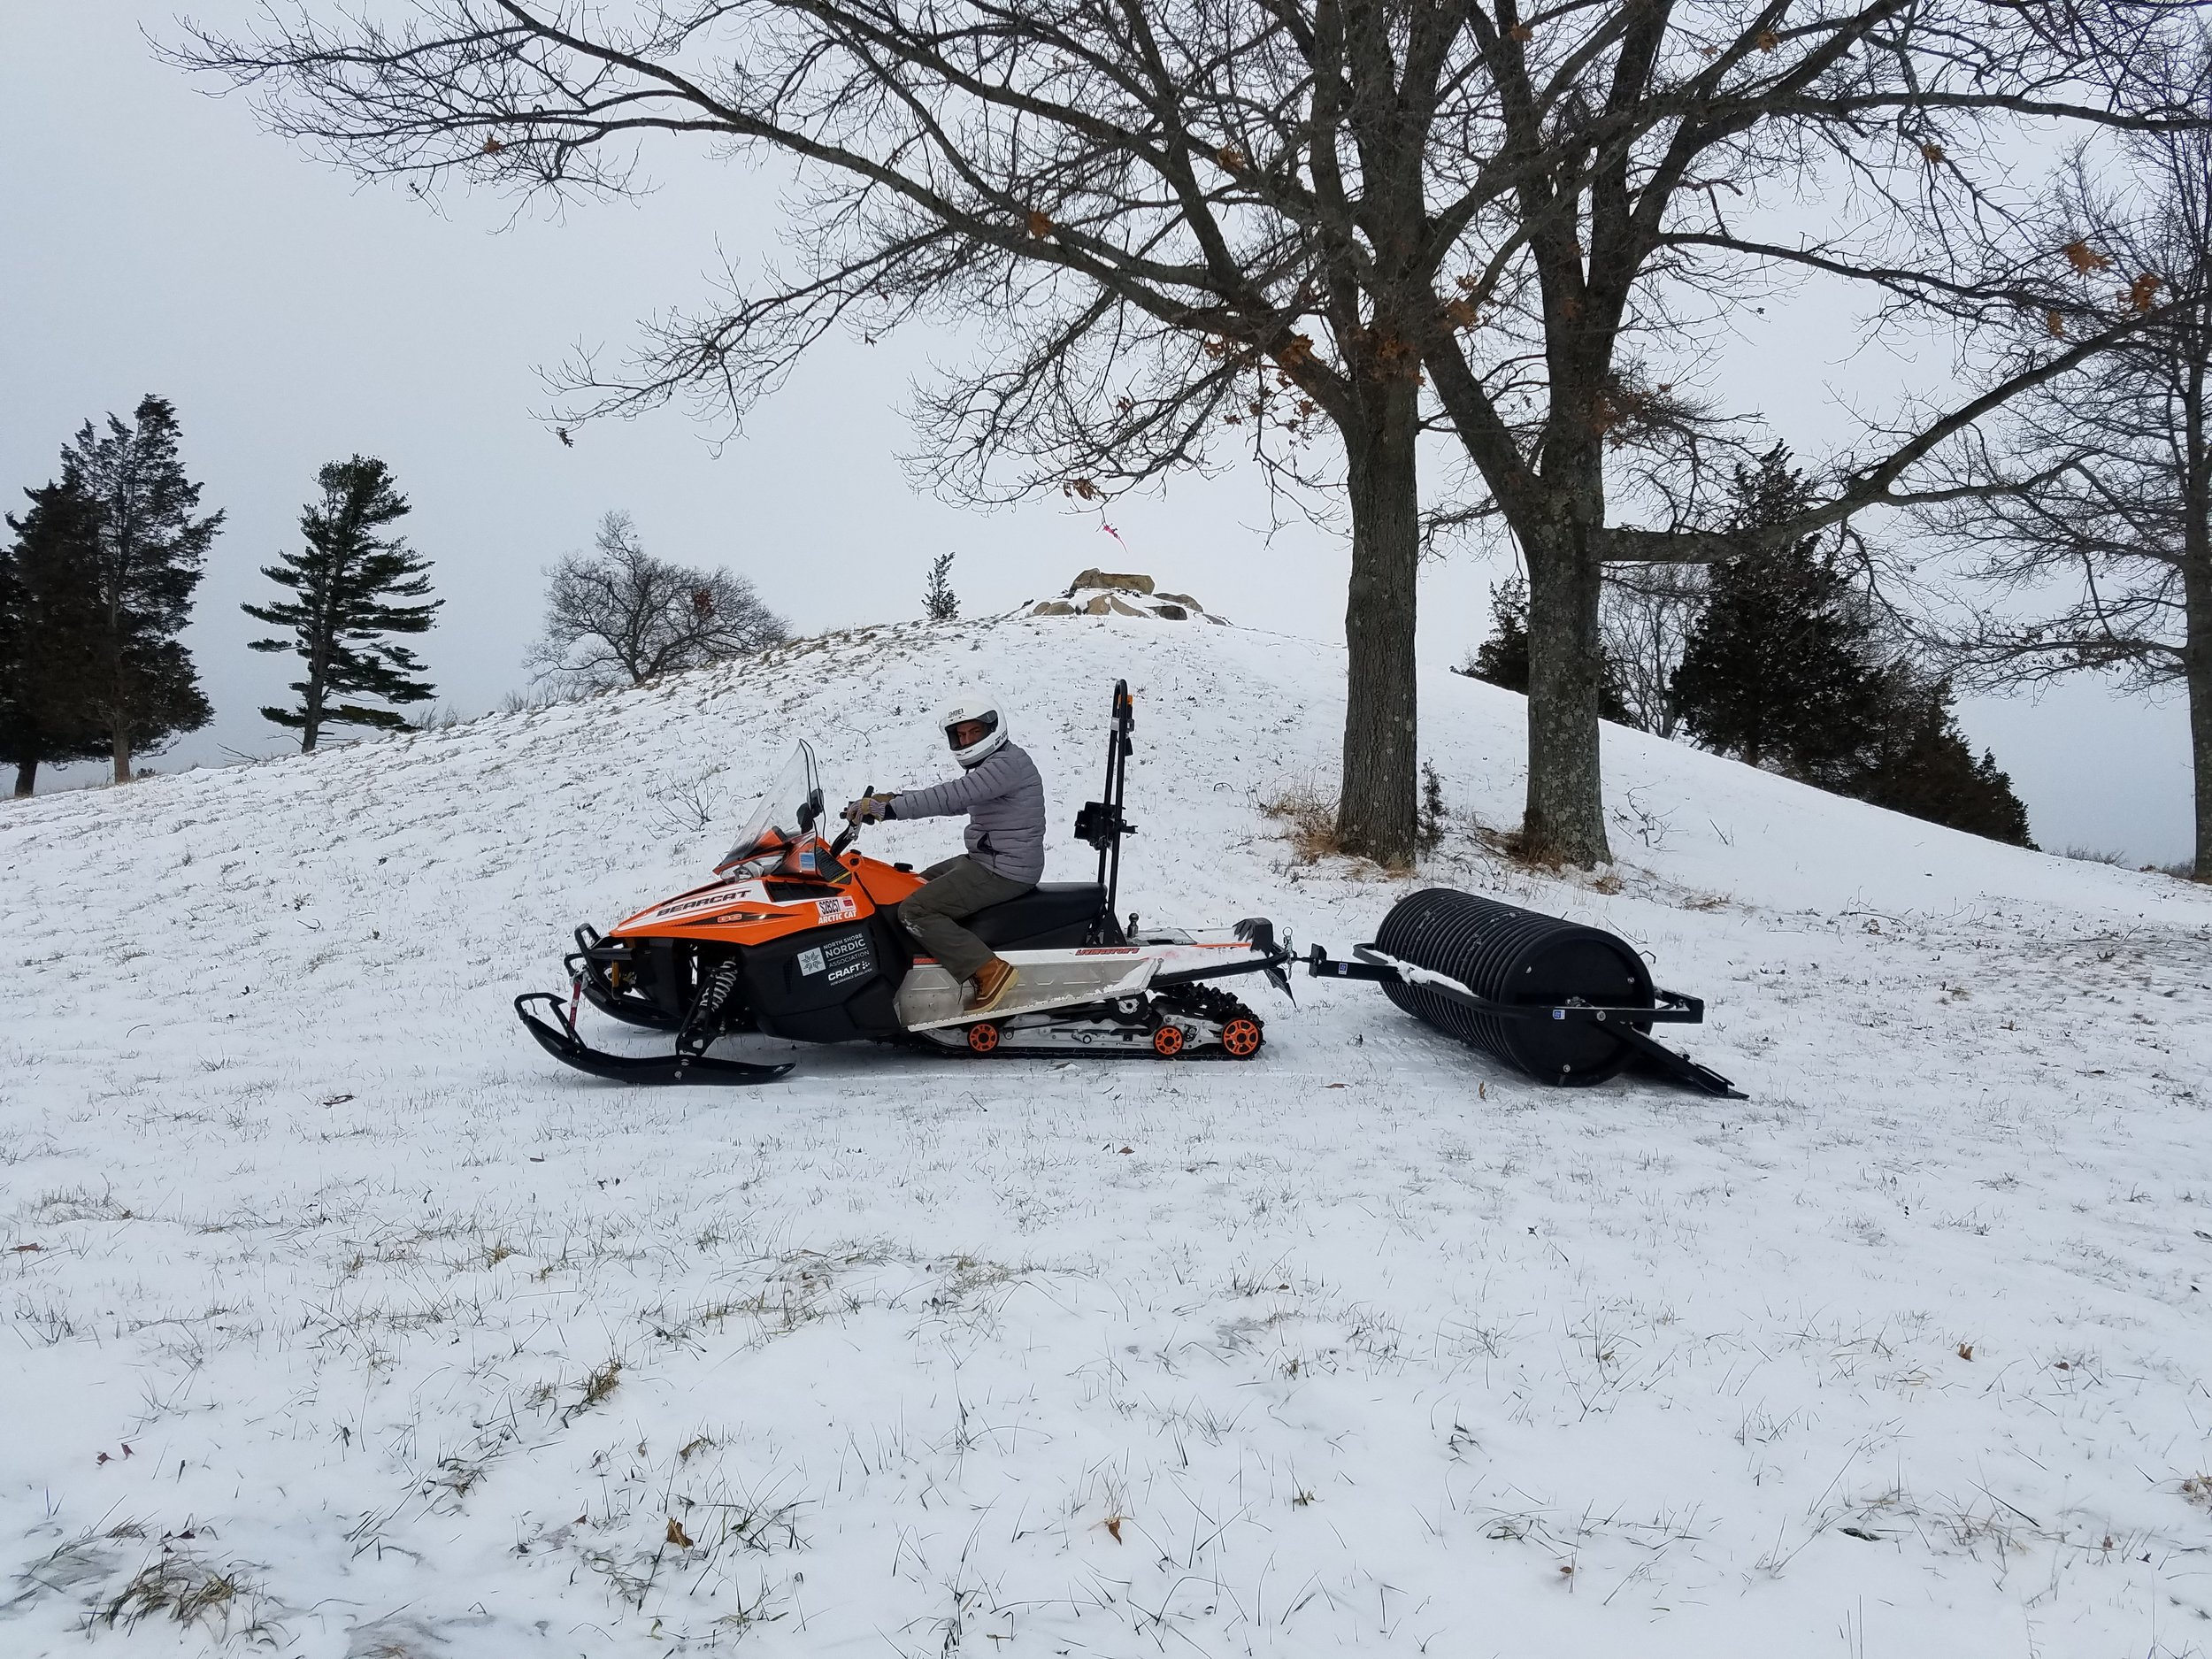 All set for a grooming at Sagamore Hill, but the snow was all blown out.